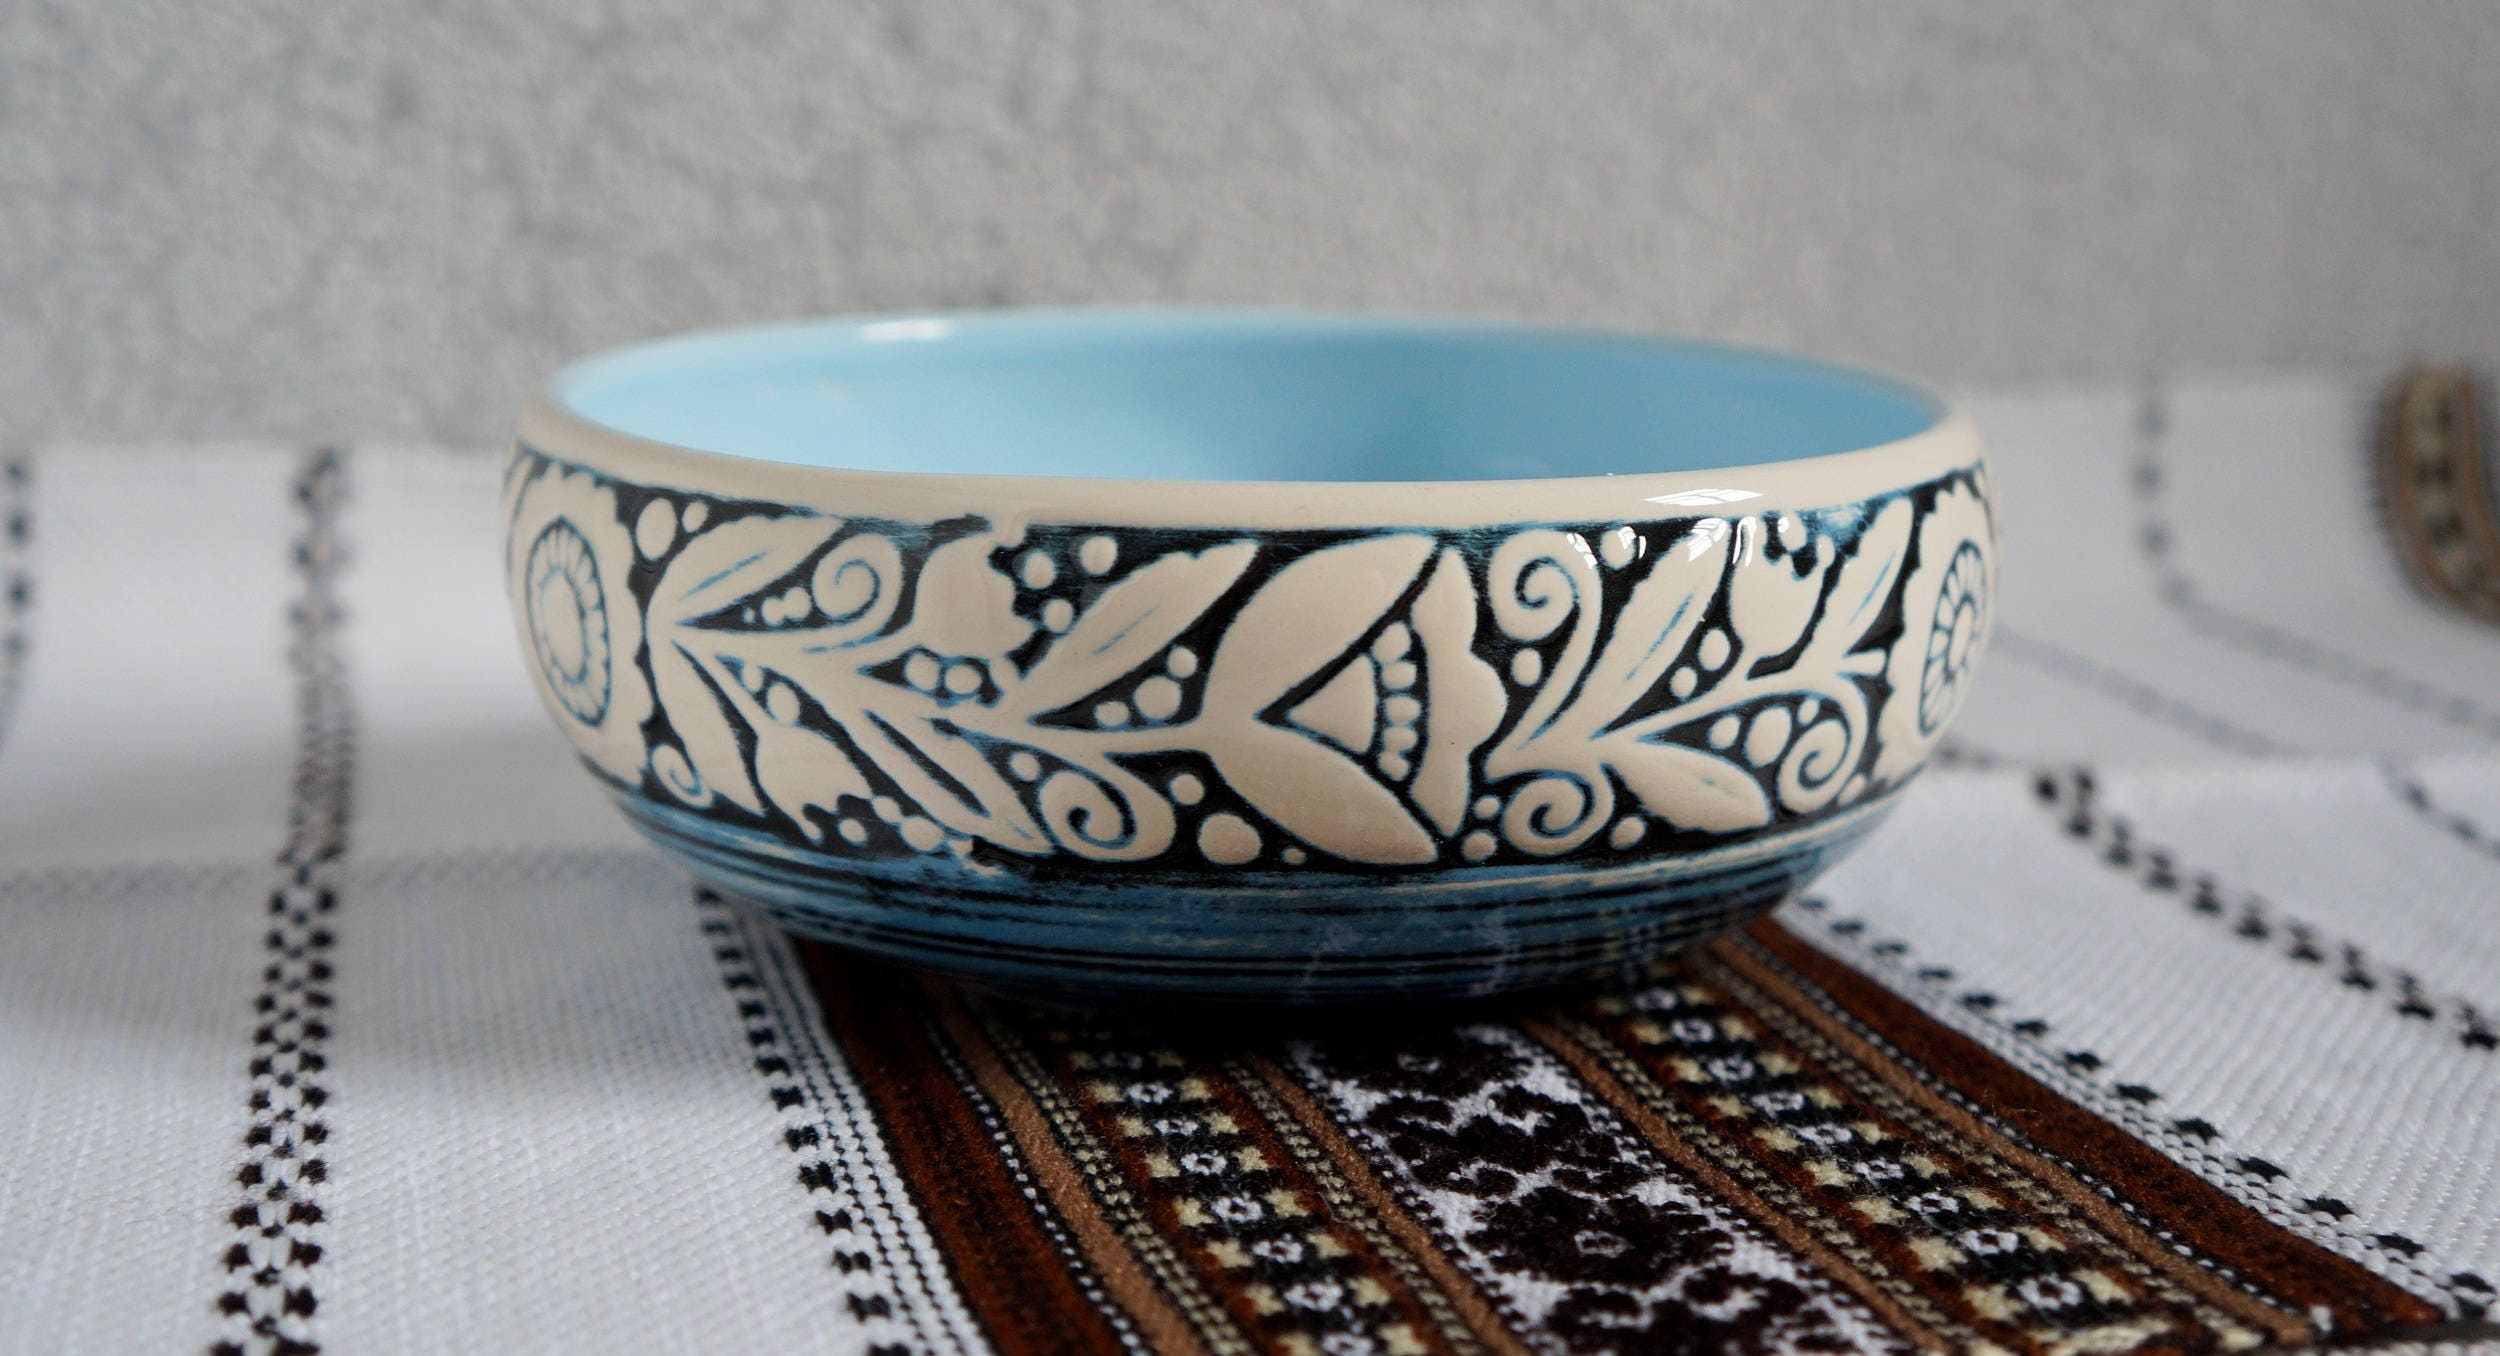 Pottery Wedding Gifts: Pottery Bowl Wedding Gift Ideas For Women Snack Bowl Clay